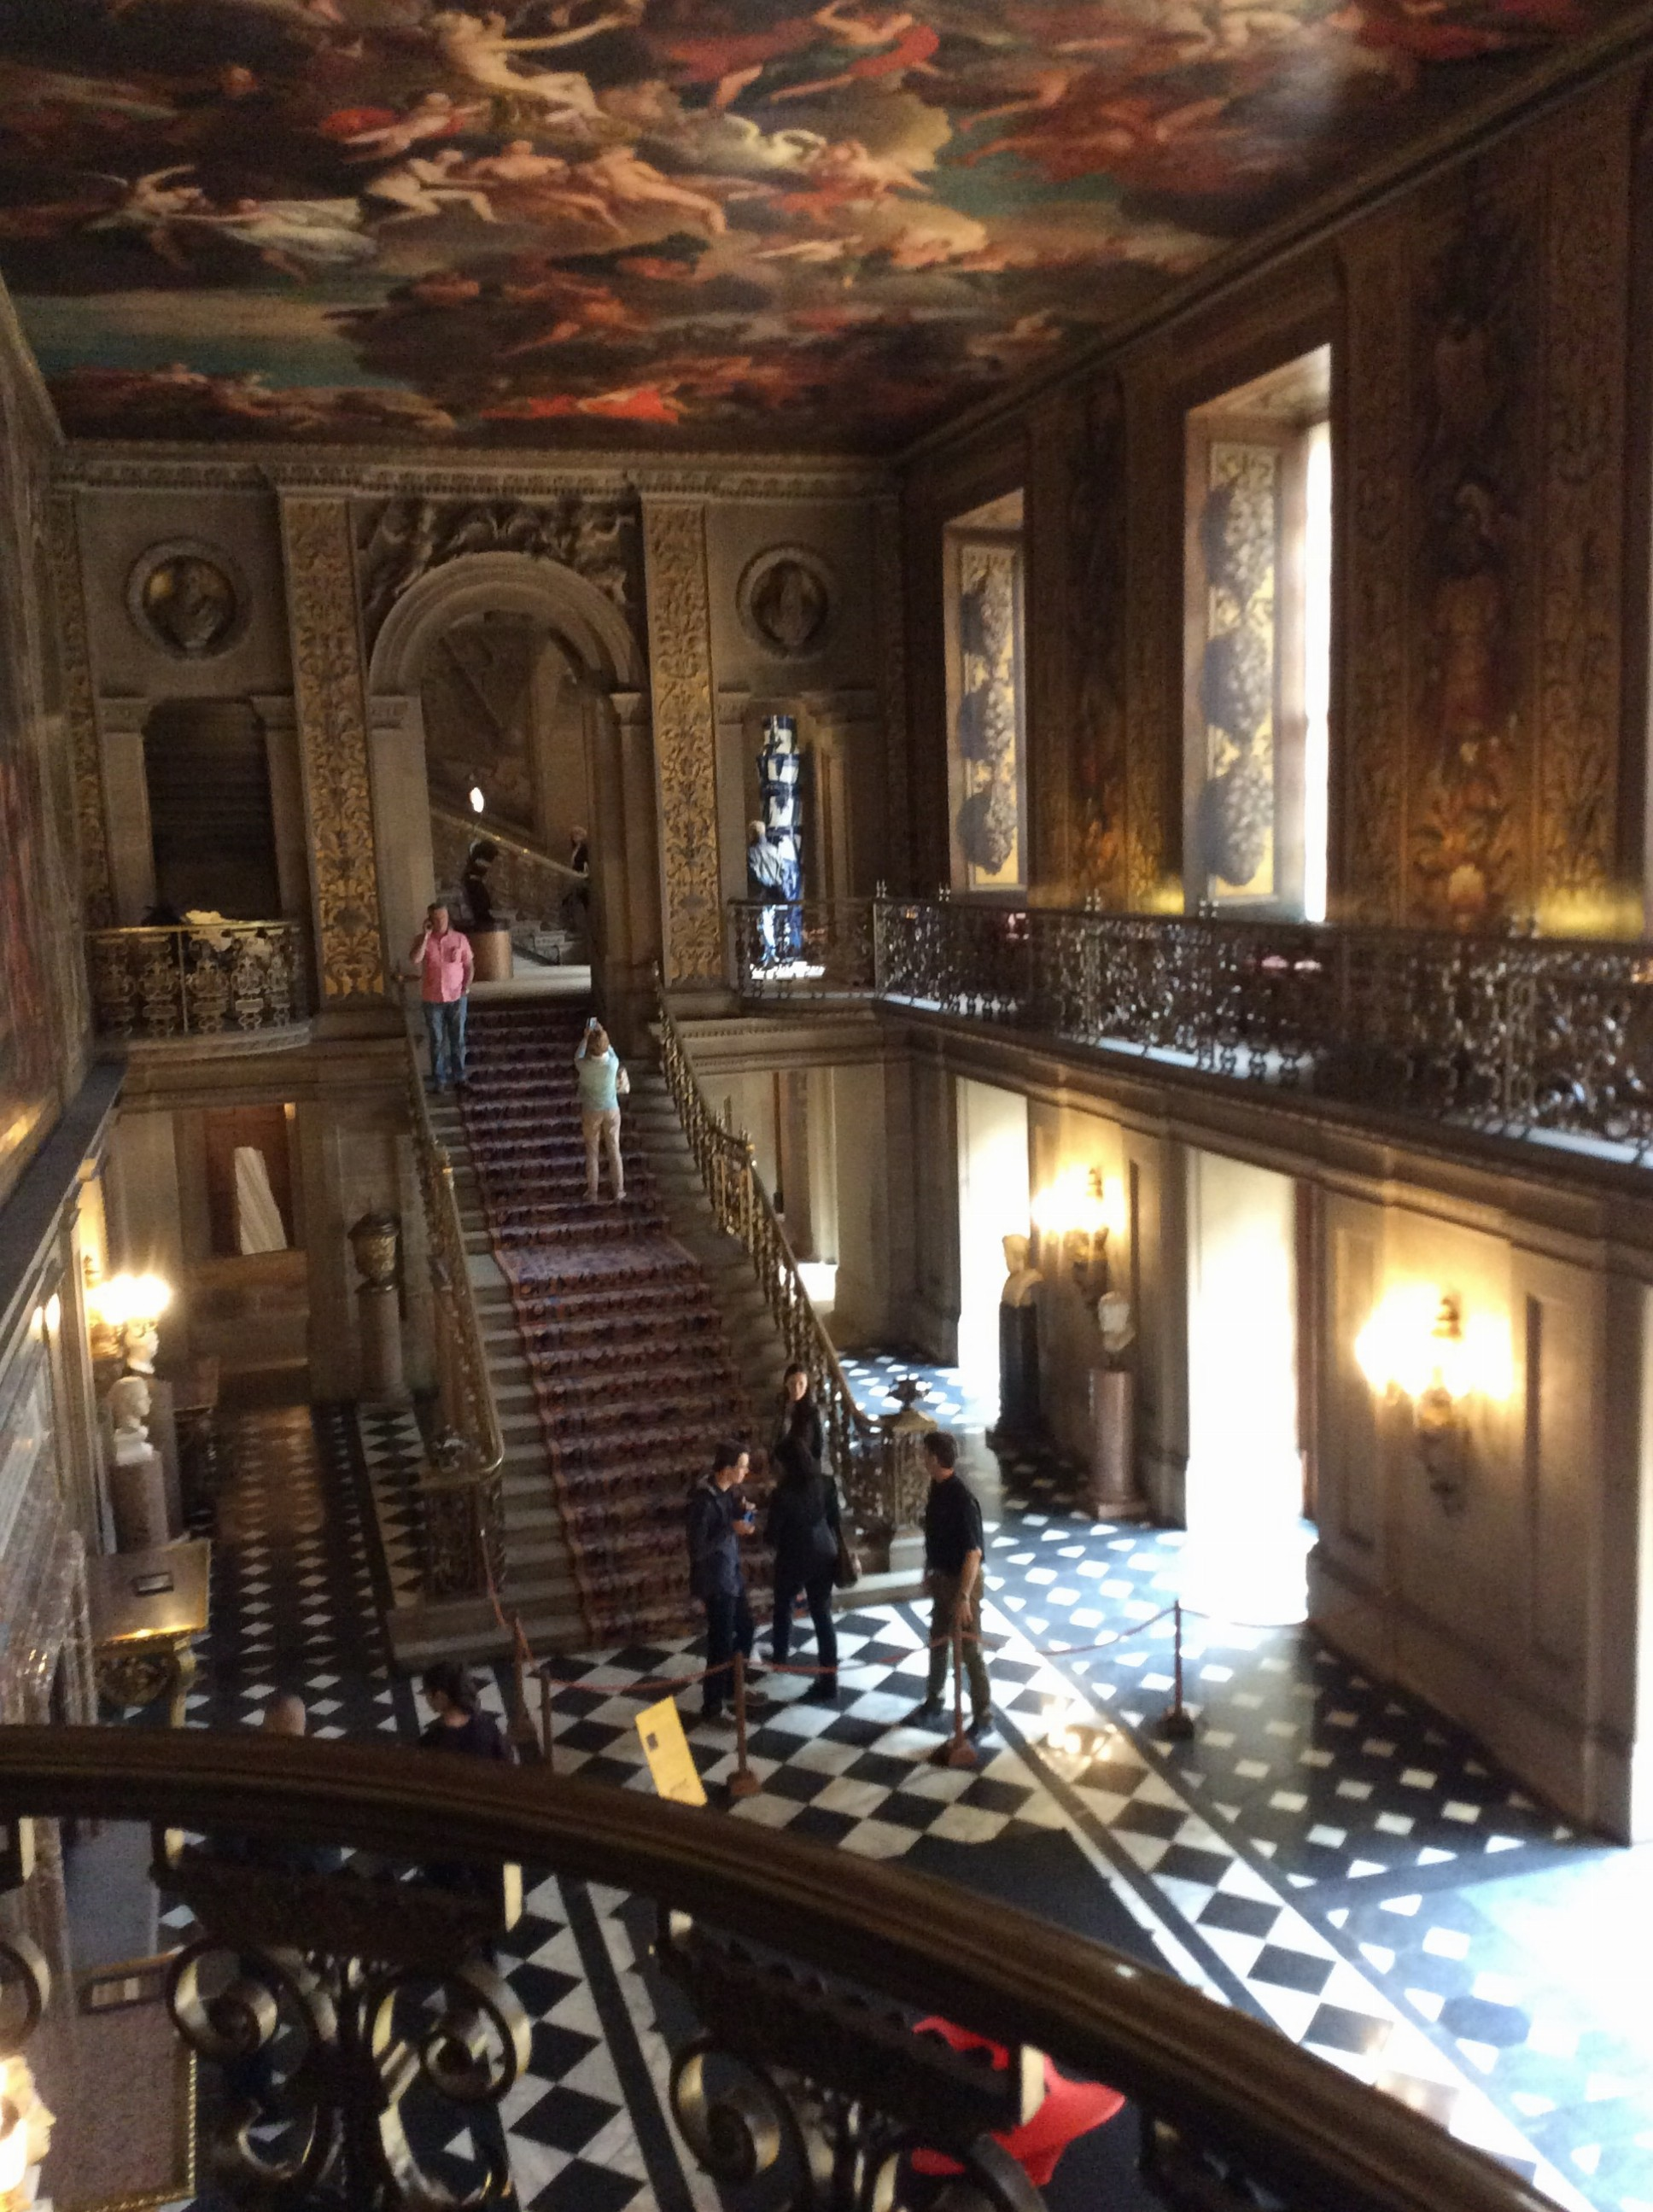 The main staircase in the house.